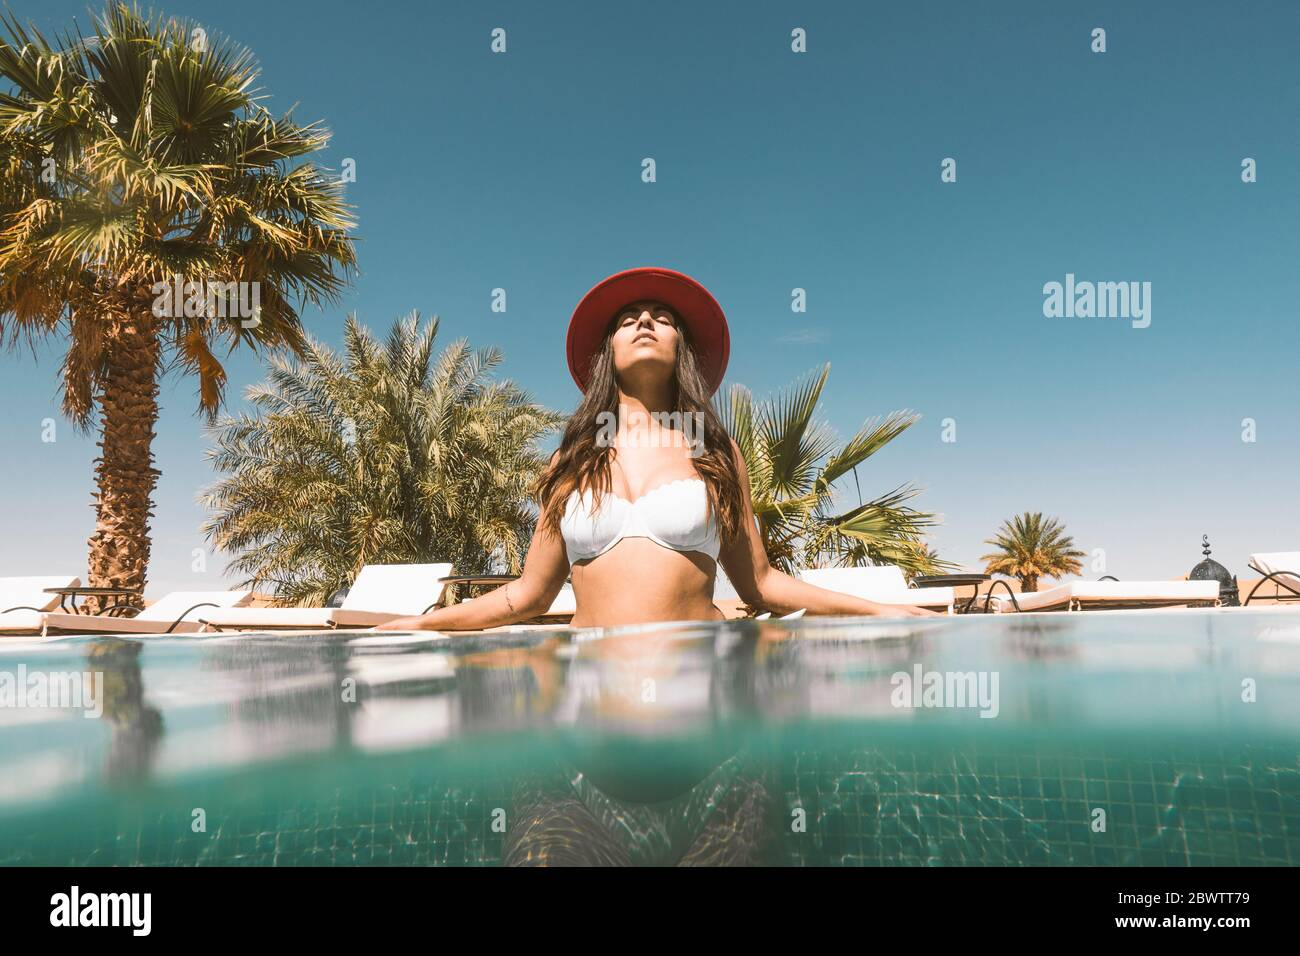 Portrait of young woman relaxing in swimming pool, Morocco Stock Photo